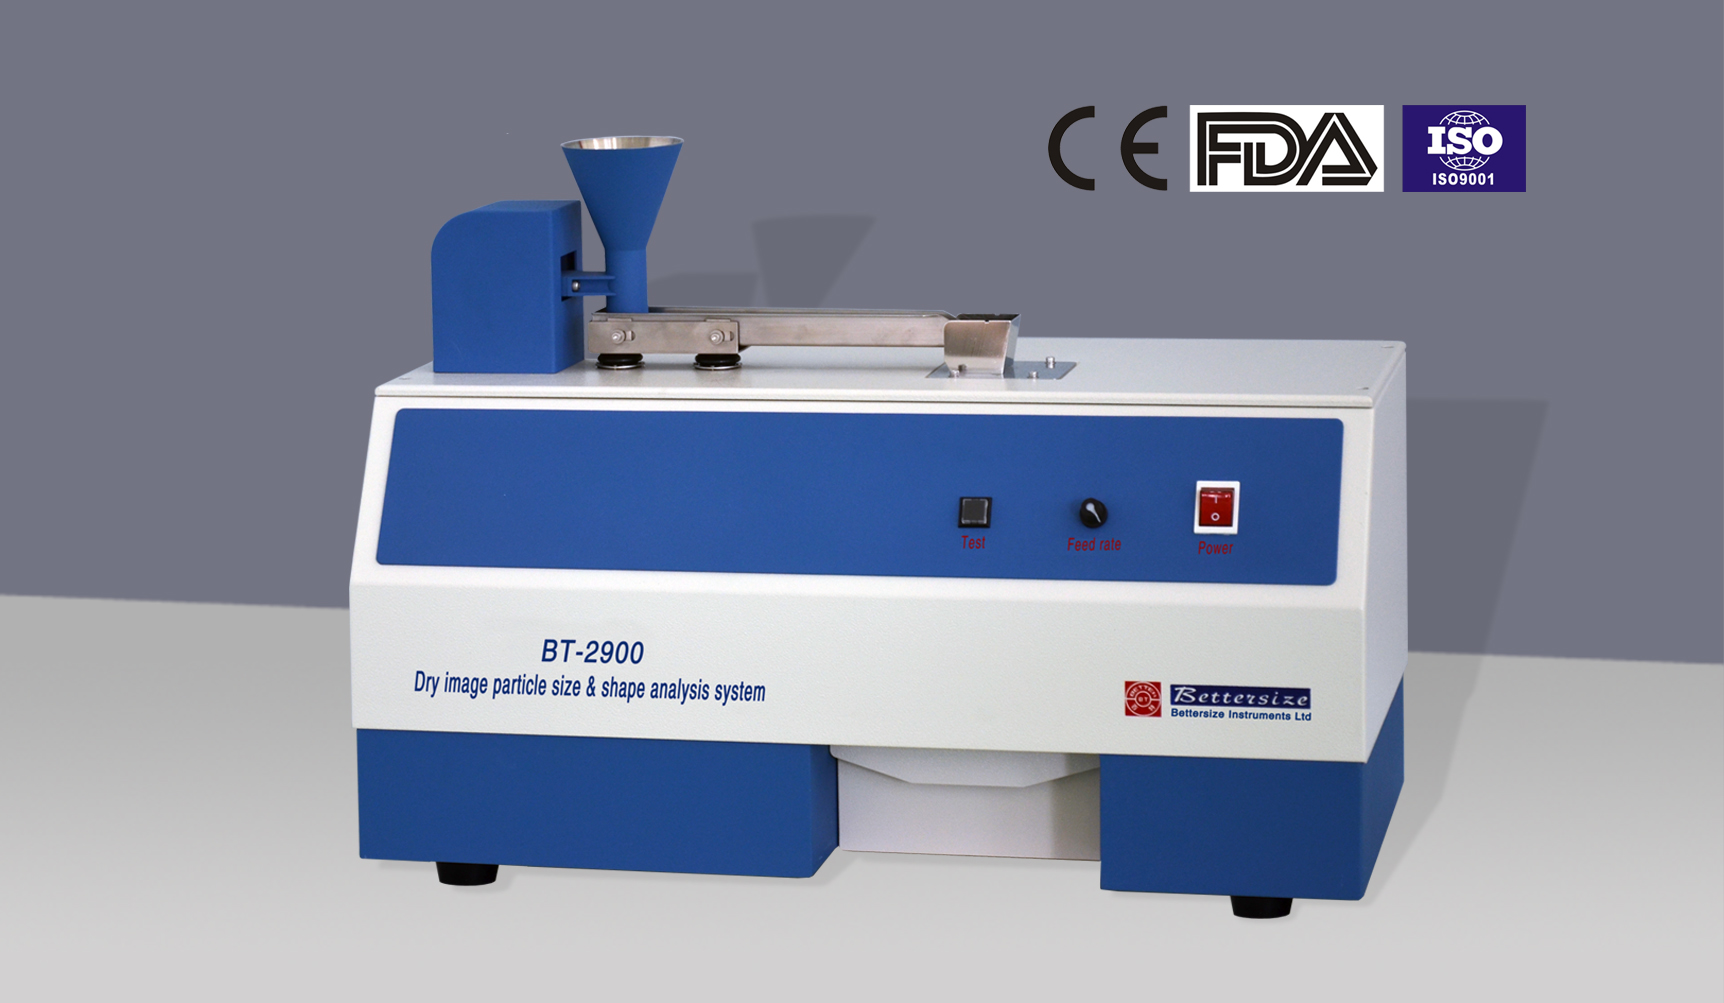 BT-2900 Image Particle Size & Shape Analysis System